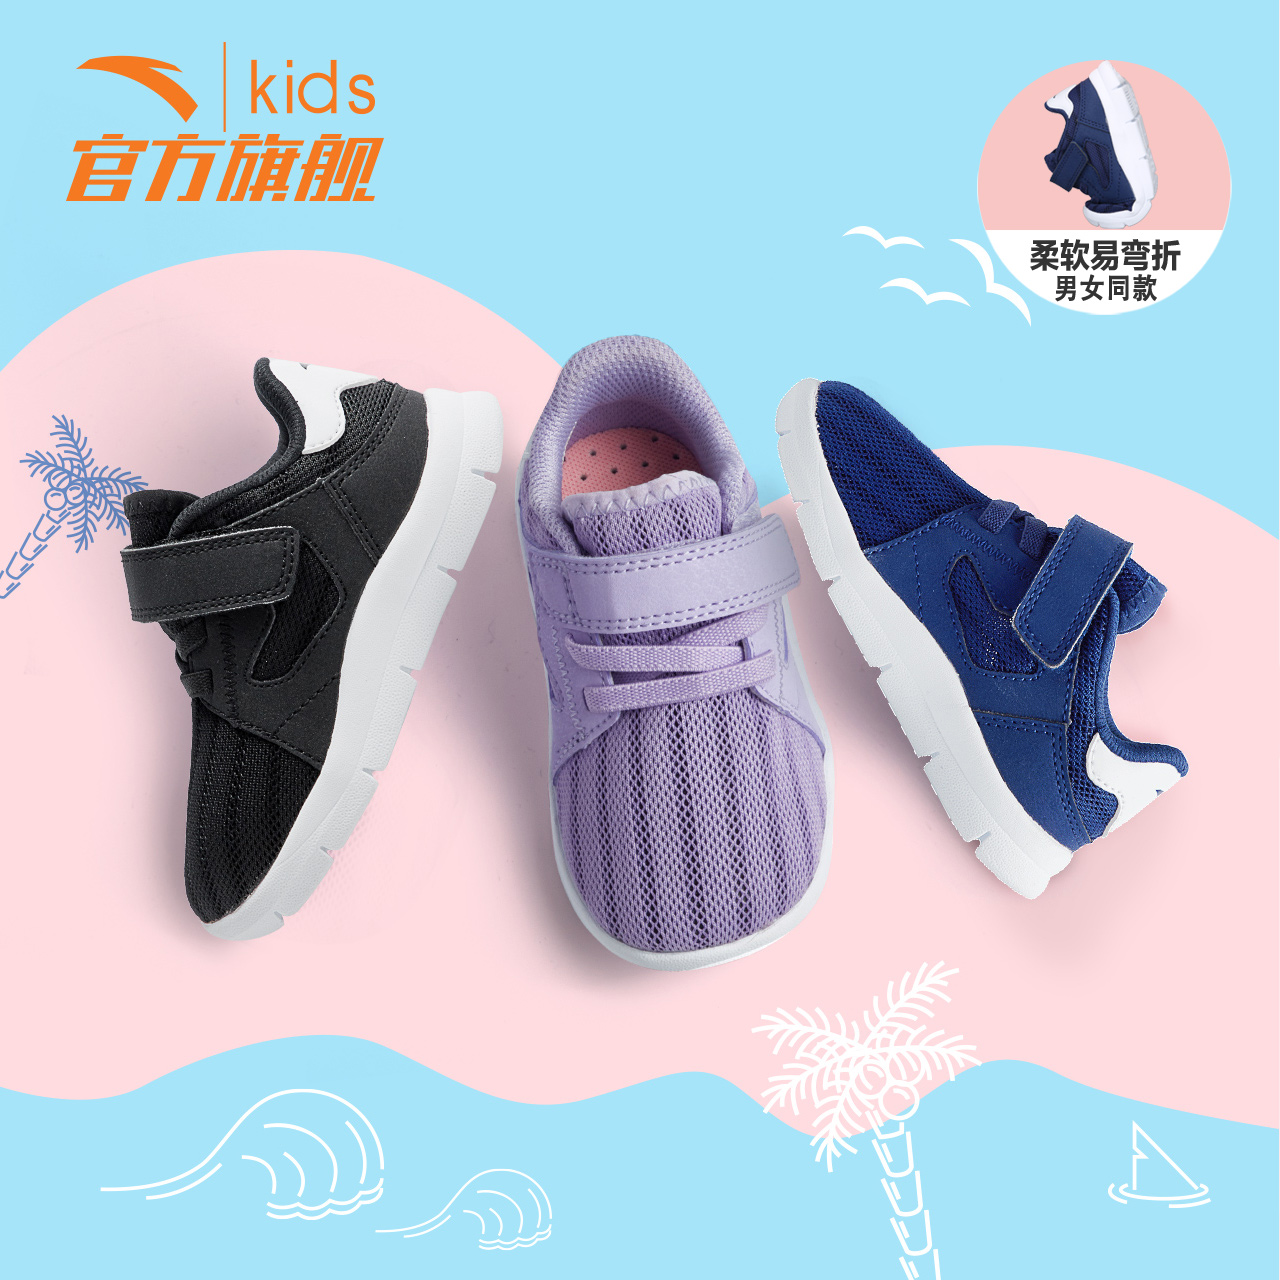 6260ccac9f2 Anta children s shoes 2019 spring new breathable mesh men and women baby  children running shoes toddler shoes soft bottom baby shoes